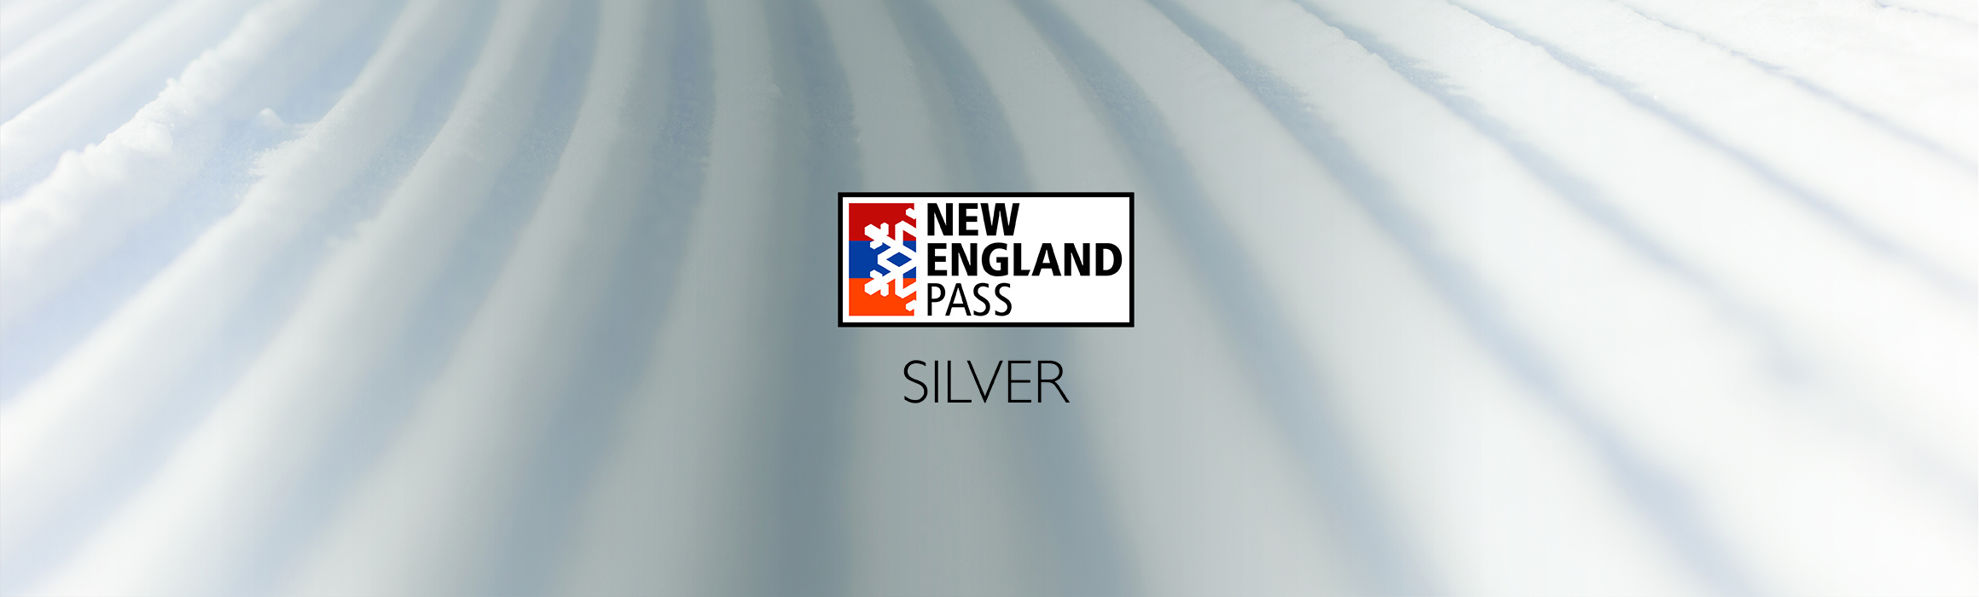 Picture of Silver Pass